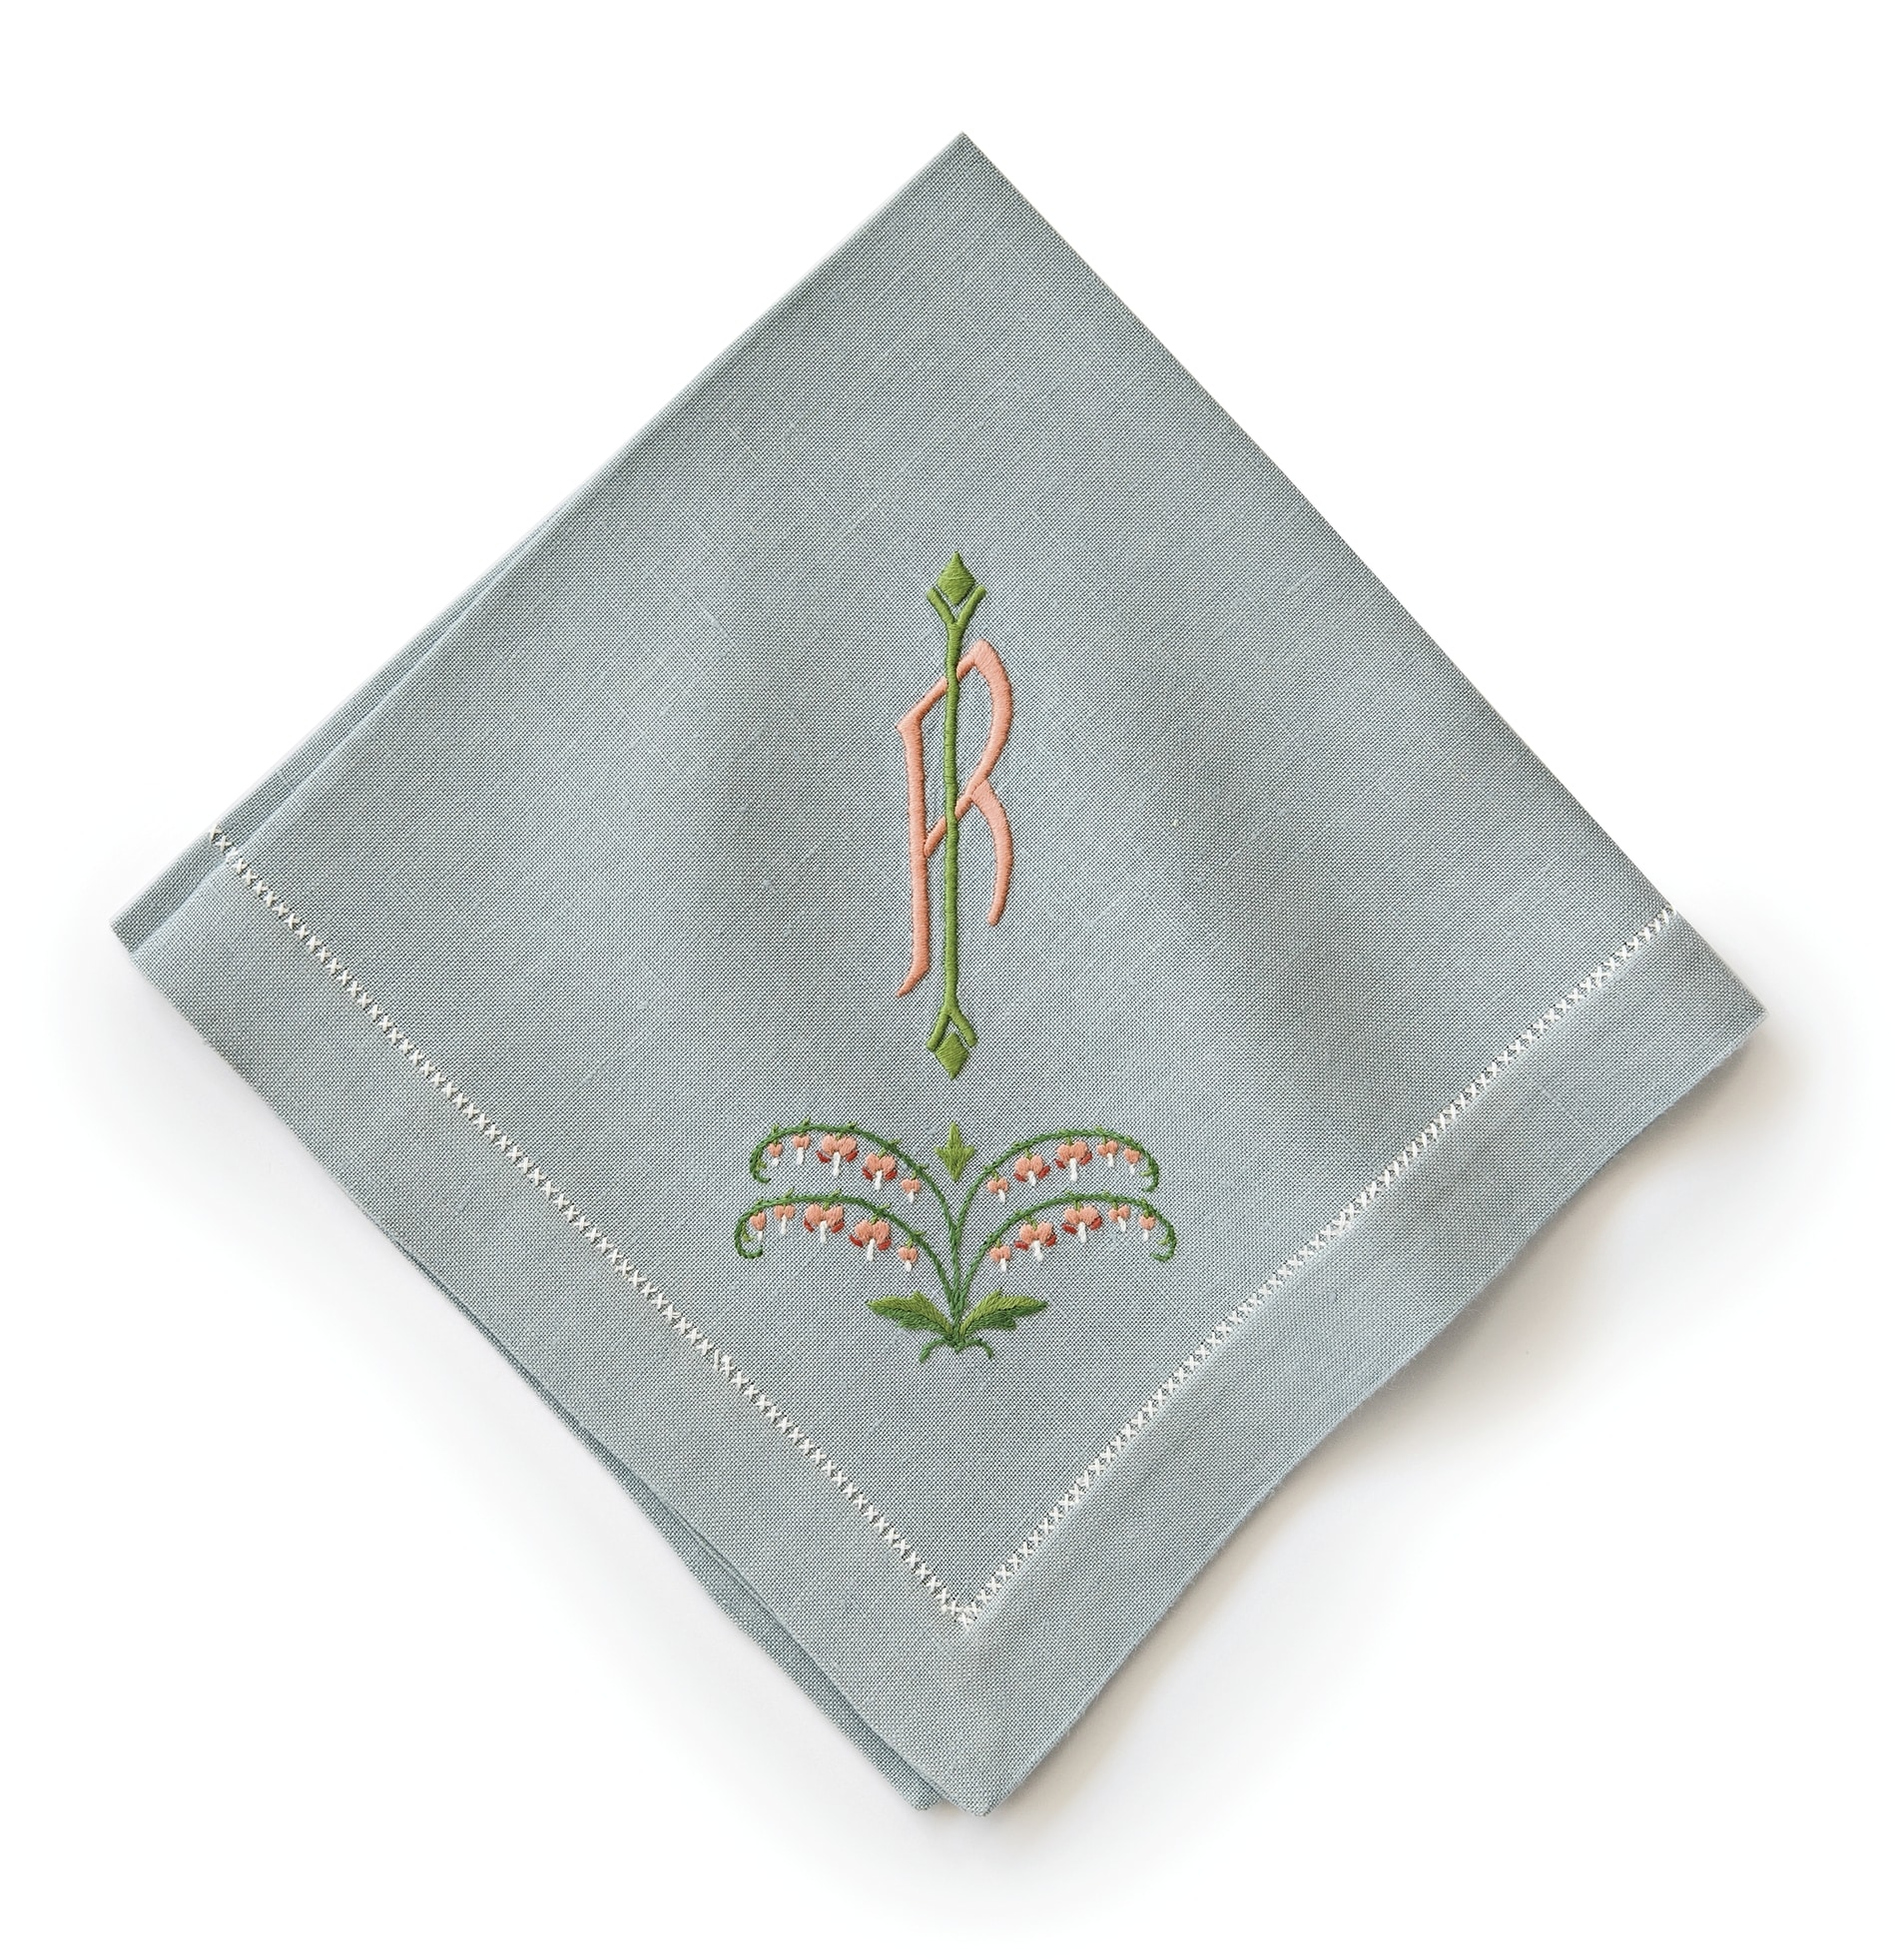 JuliaBLinens_enezia_Dinner_Napkin_Monogram_Robins_Egg_Blue.jpg